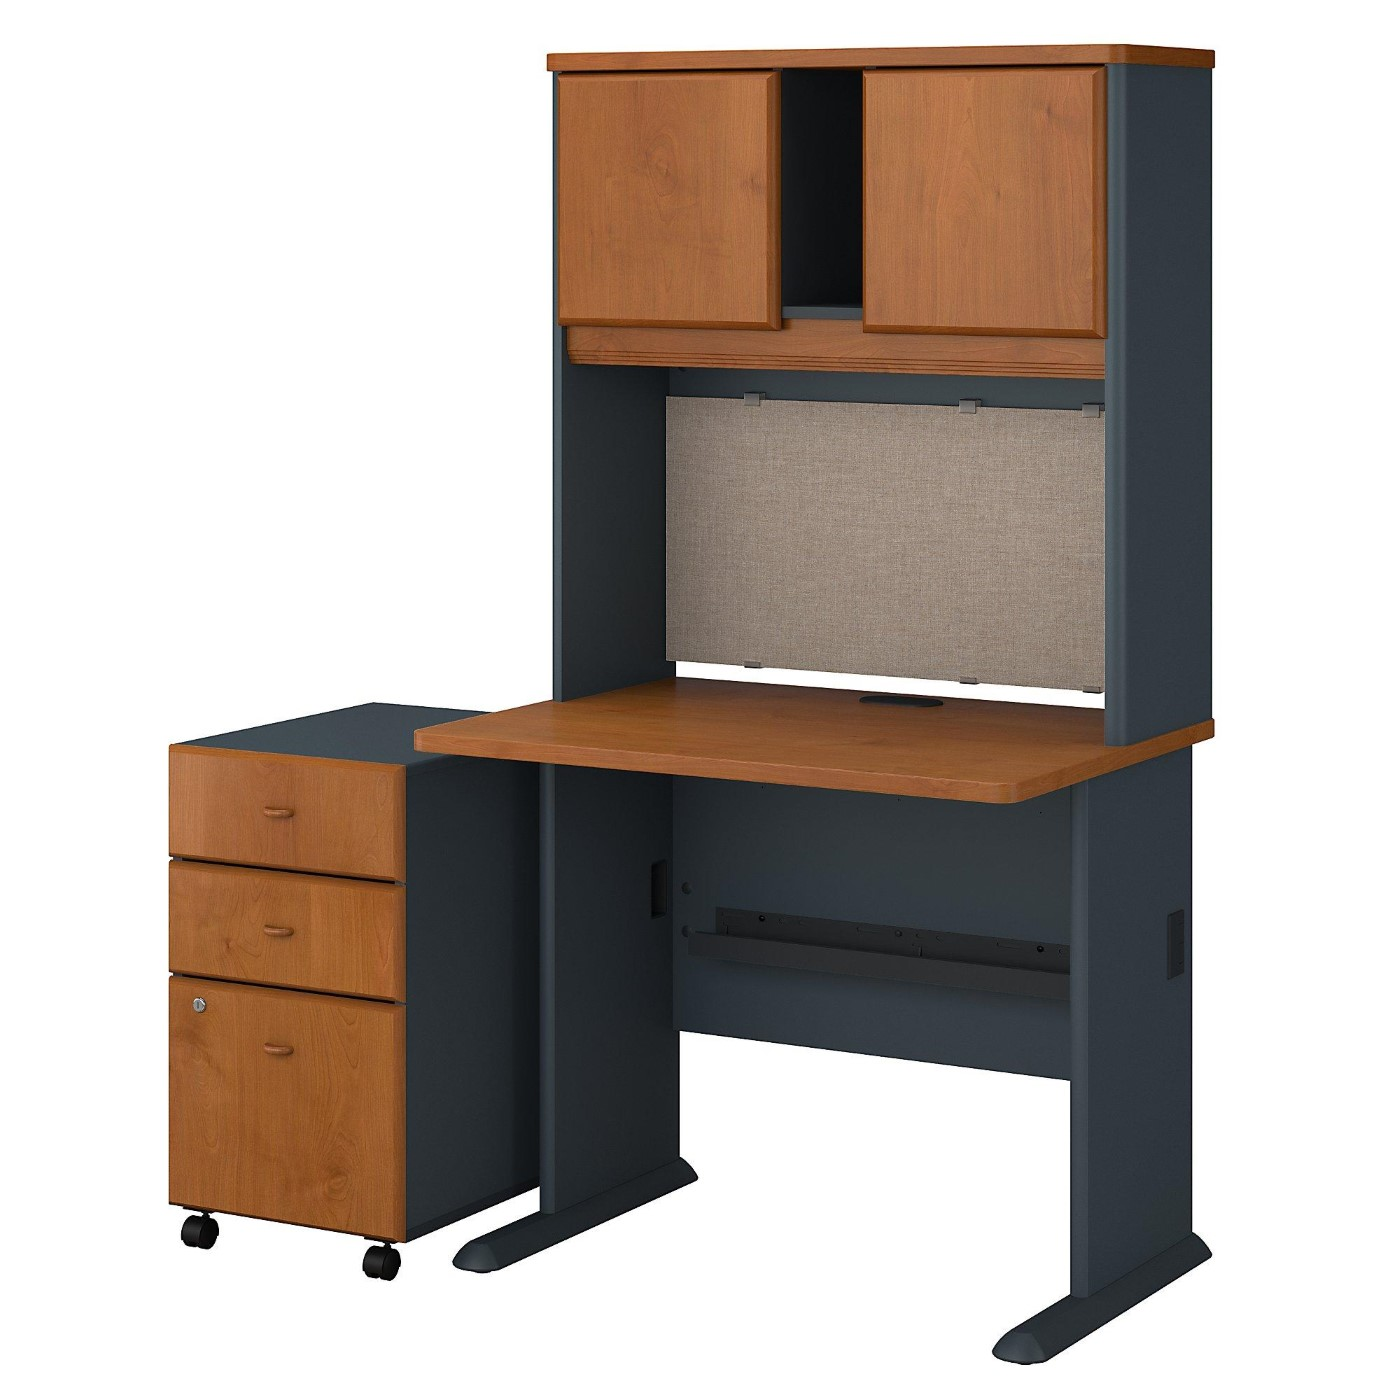 </b></font><b>BUSH BUSINESS FURNITURE SERIES A 36W DESK WITH HUTCH AND MOBILE FILE CABINET. FREE SHIPPING</font>. </b></font></b>